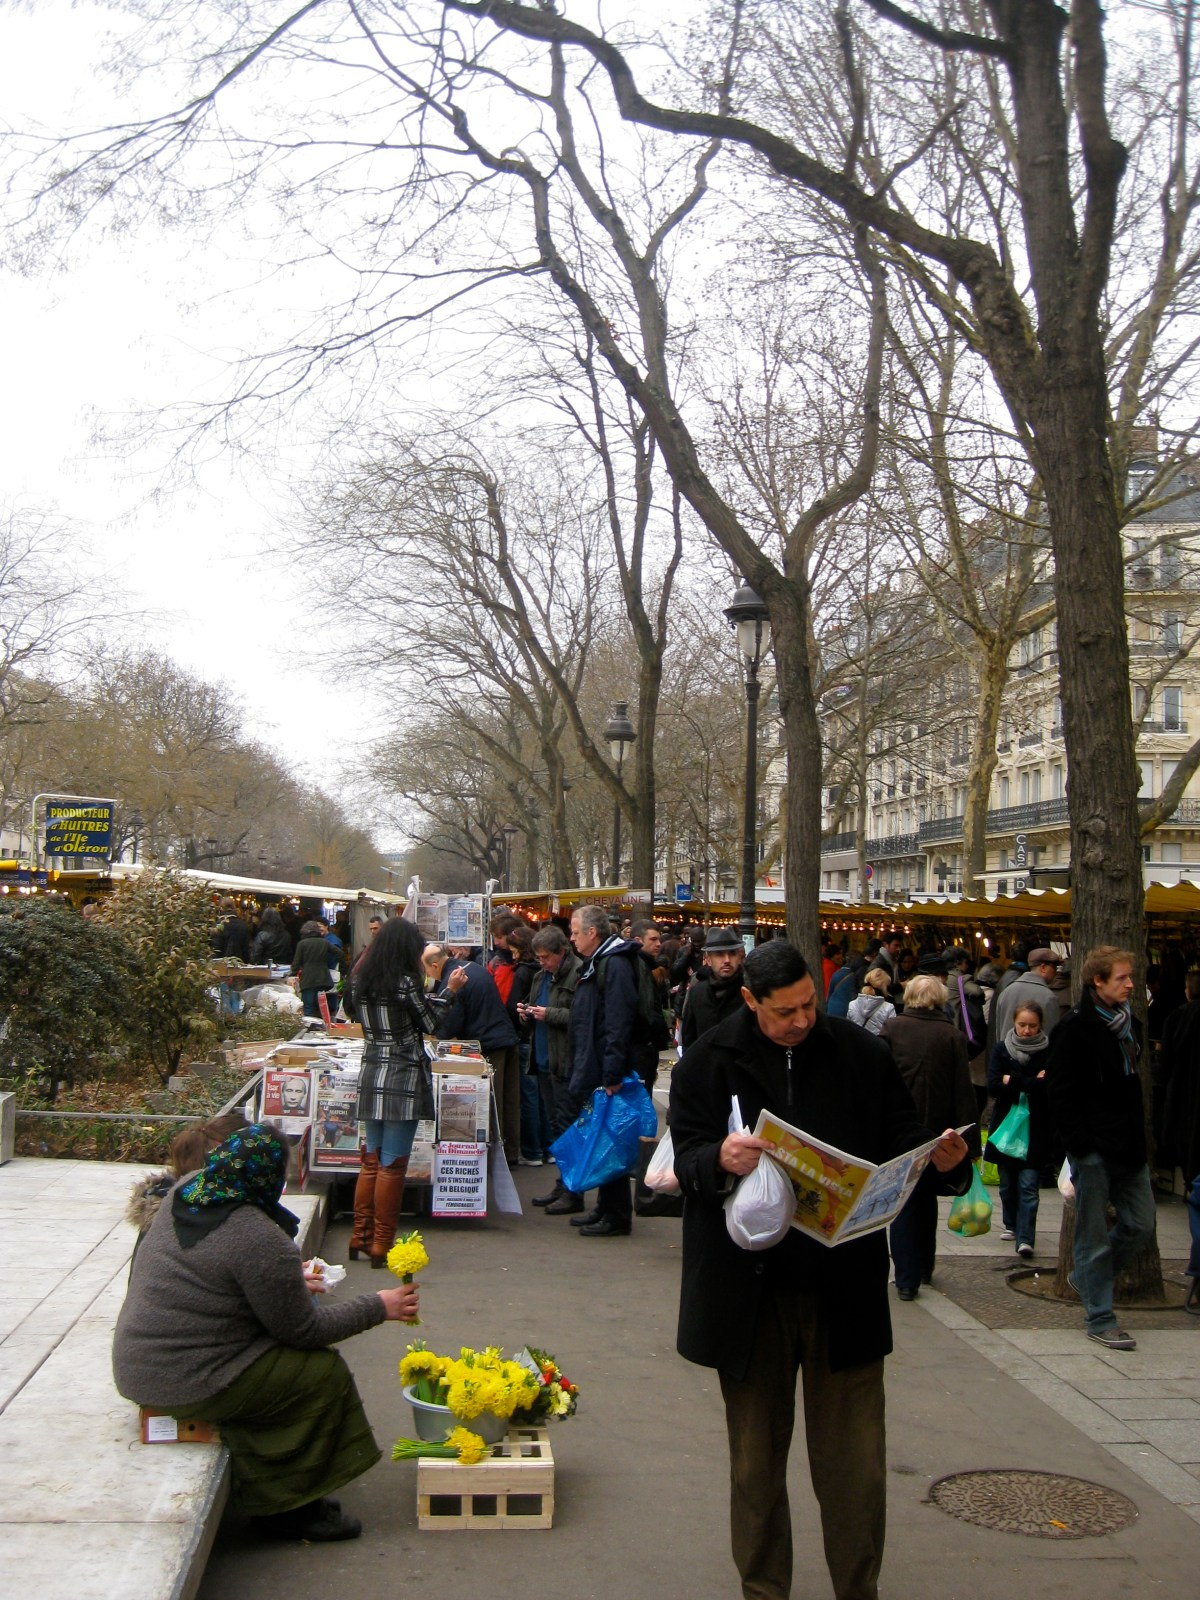 Marche Bastille market in Paris, France in winter